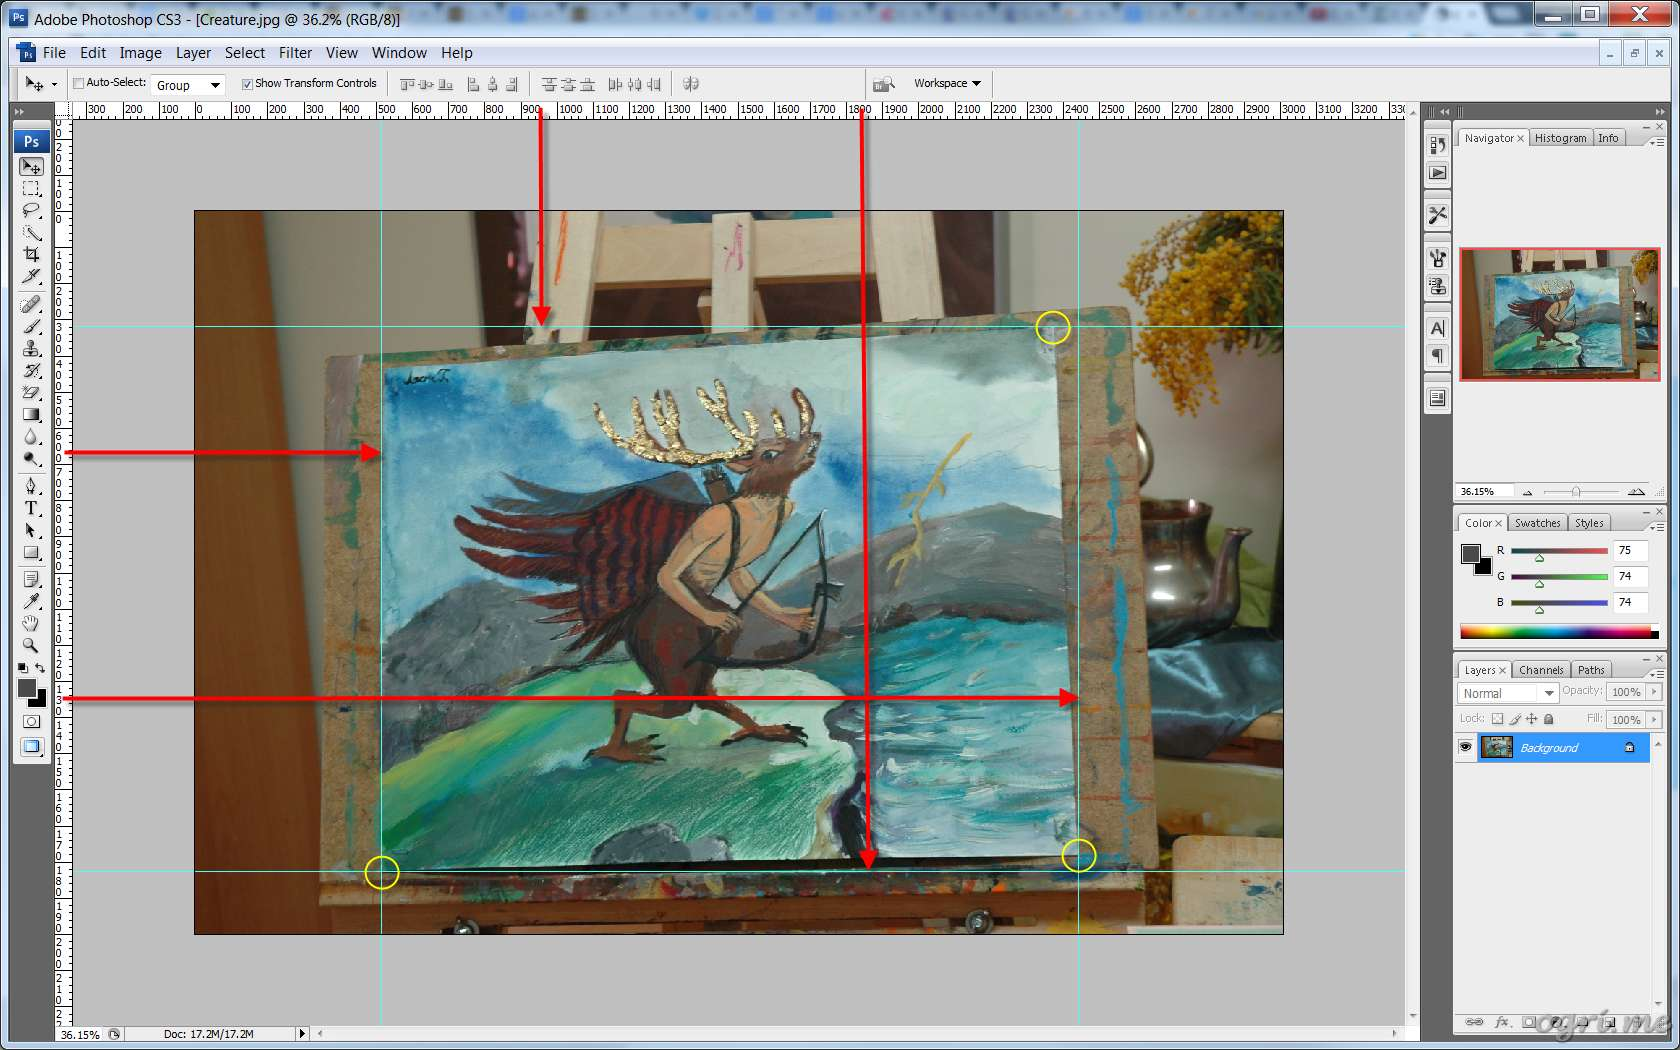 ogri.me | Photoshop: Processing photos of paintings for online gallery #03